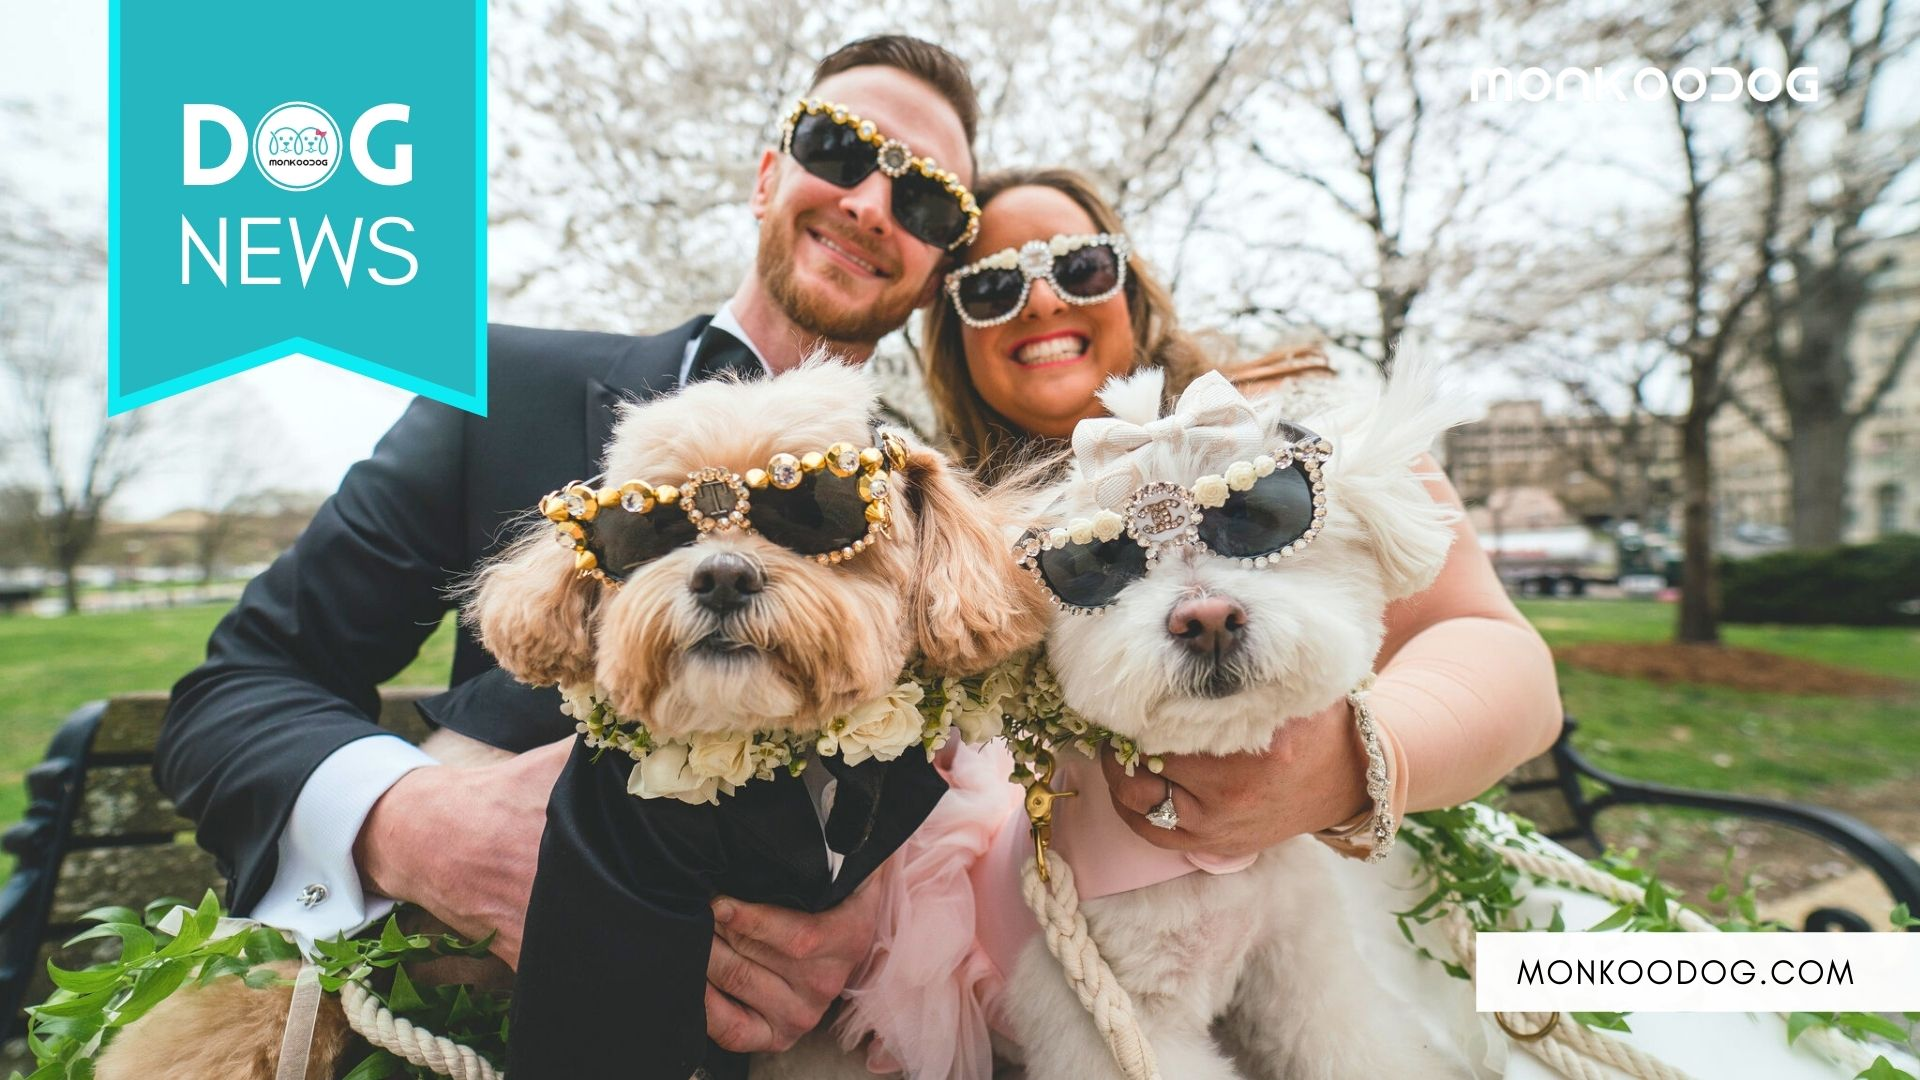 5 Pawdorable Videos Of Dogs and Weddings To Make Your Day